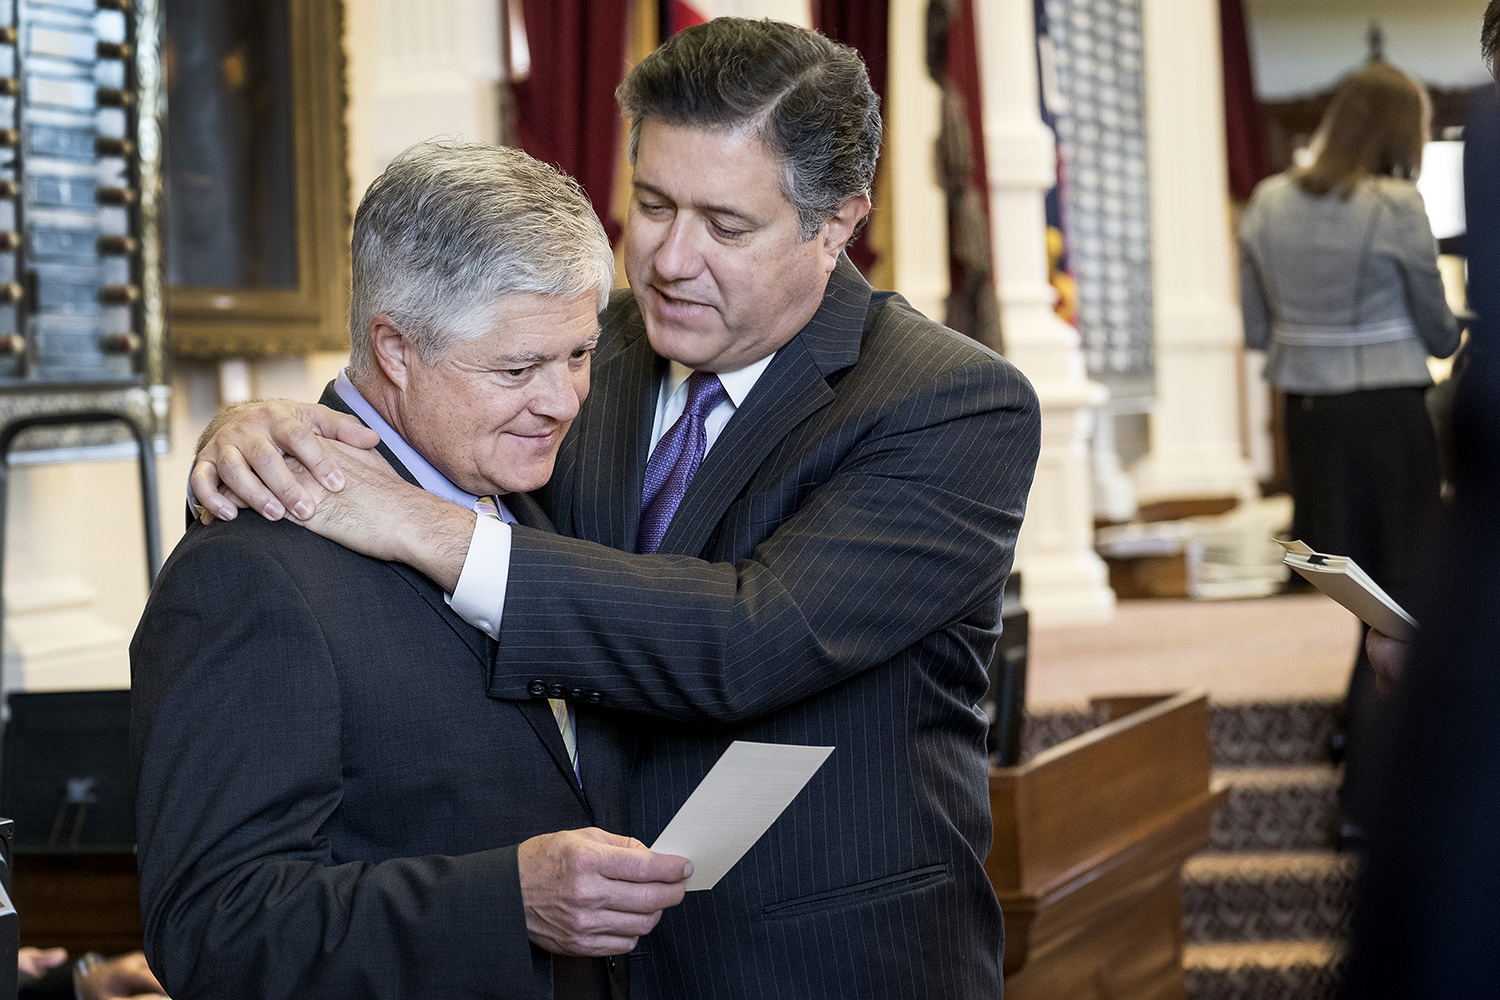 Frullo and Richard Raymond, D-Laredo, huddle on the House floor during the debate.